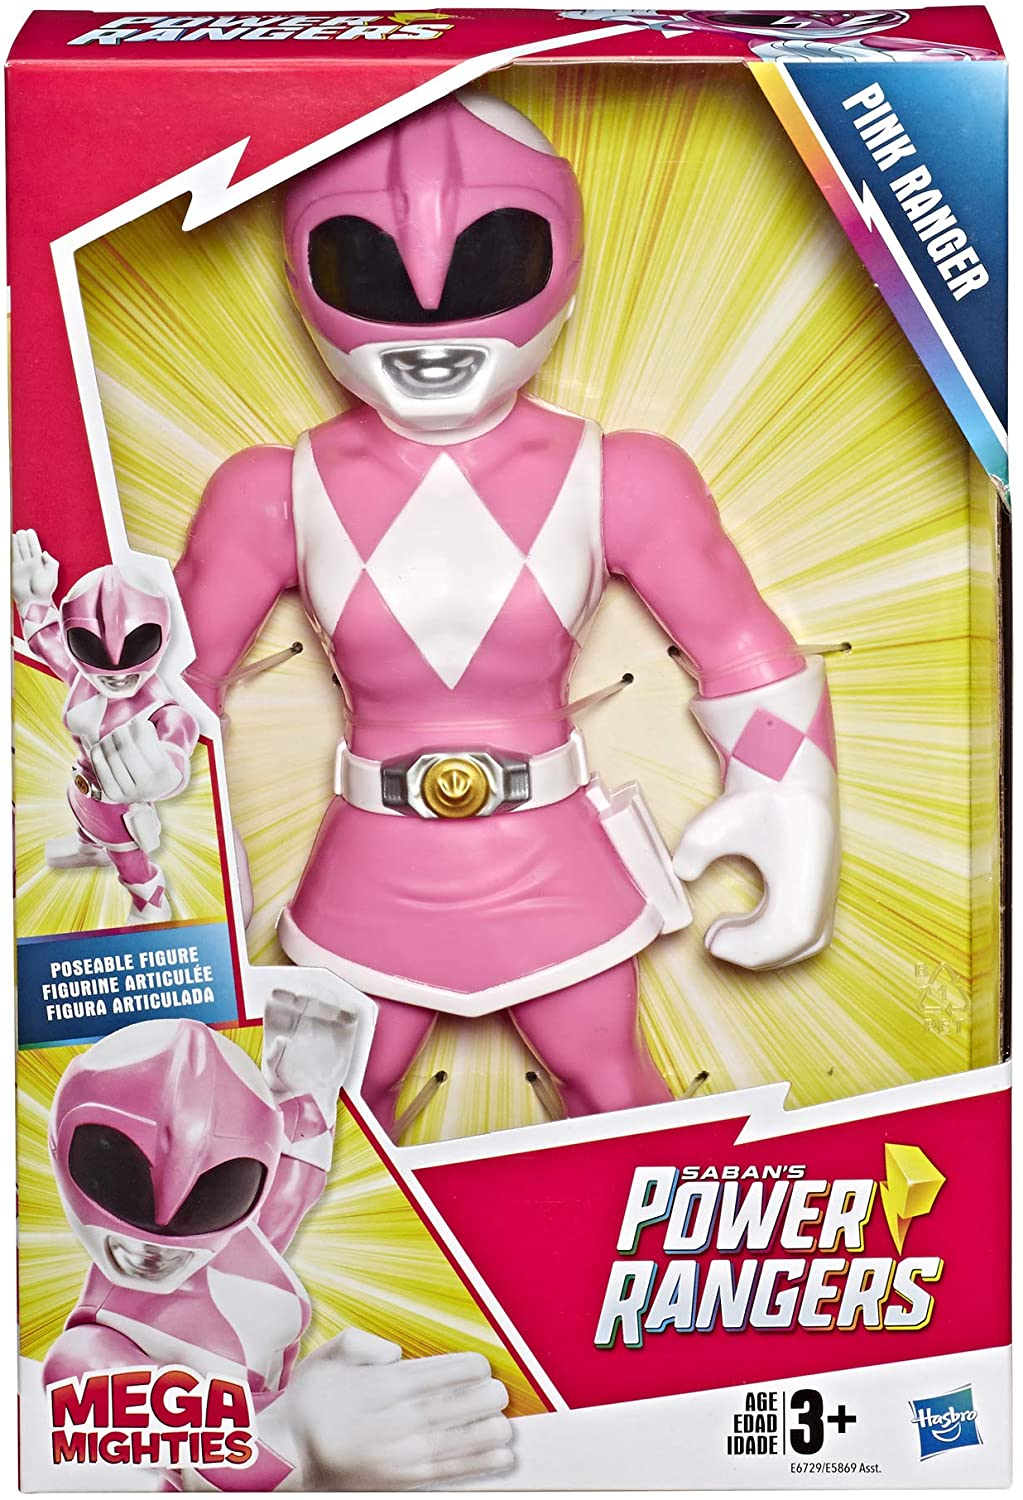 Power Rangers - Pink Ranger Mega Mighties - Playskool - HasbroE5869